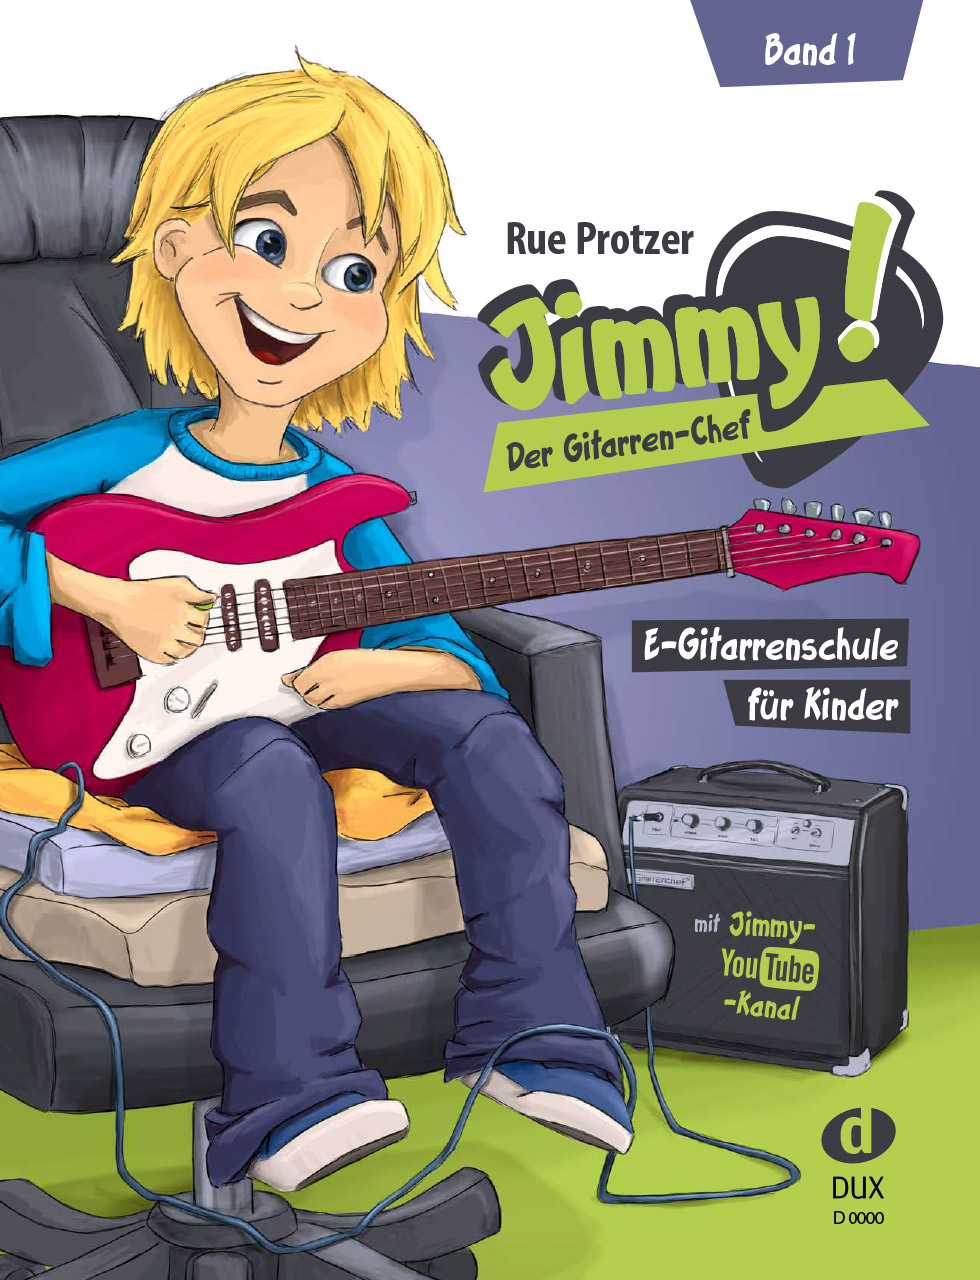 jimmy-band-1